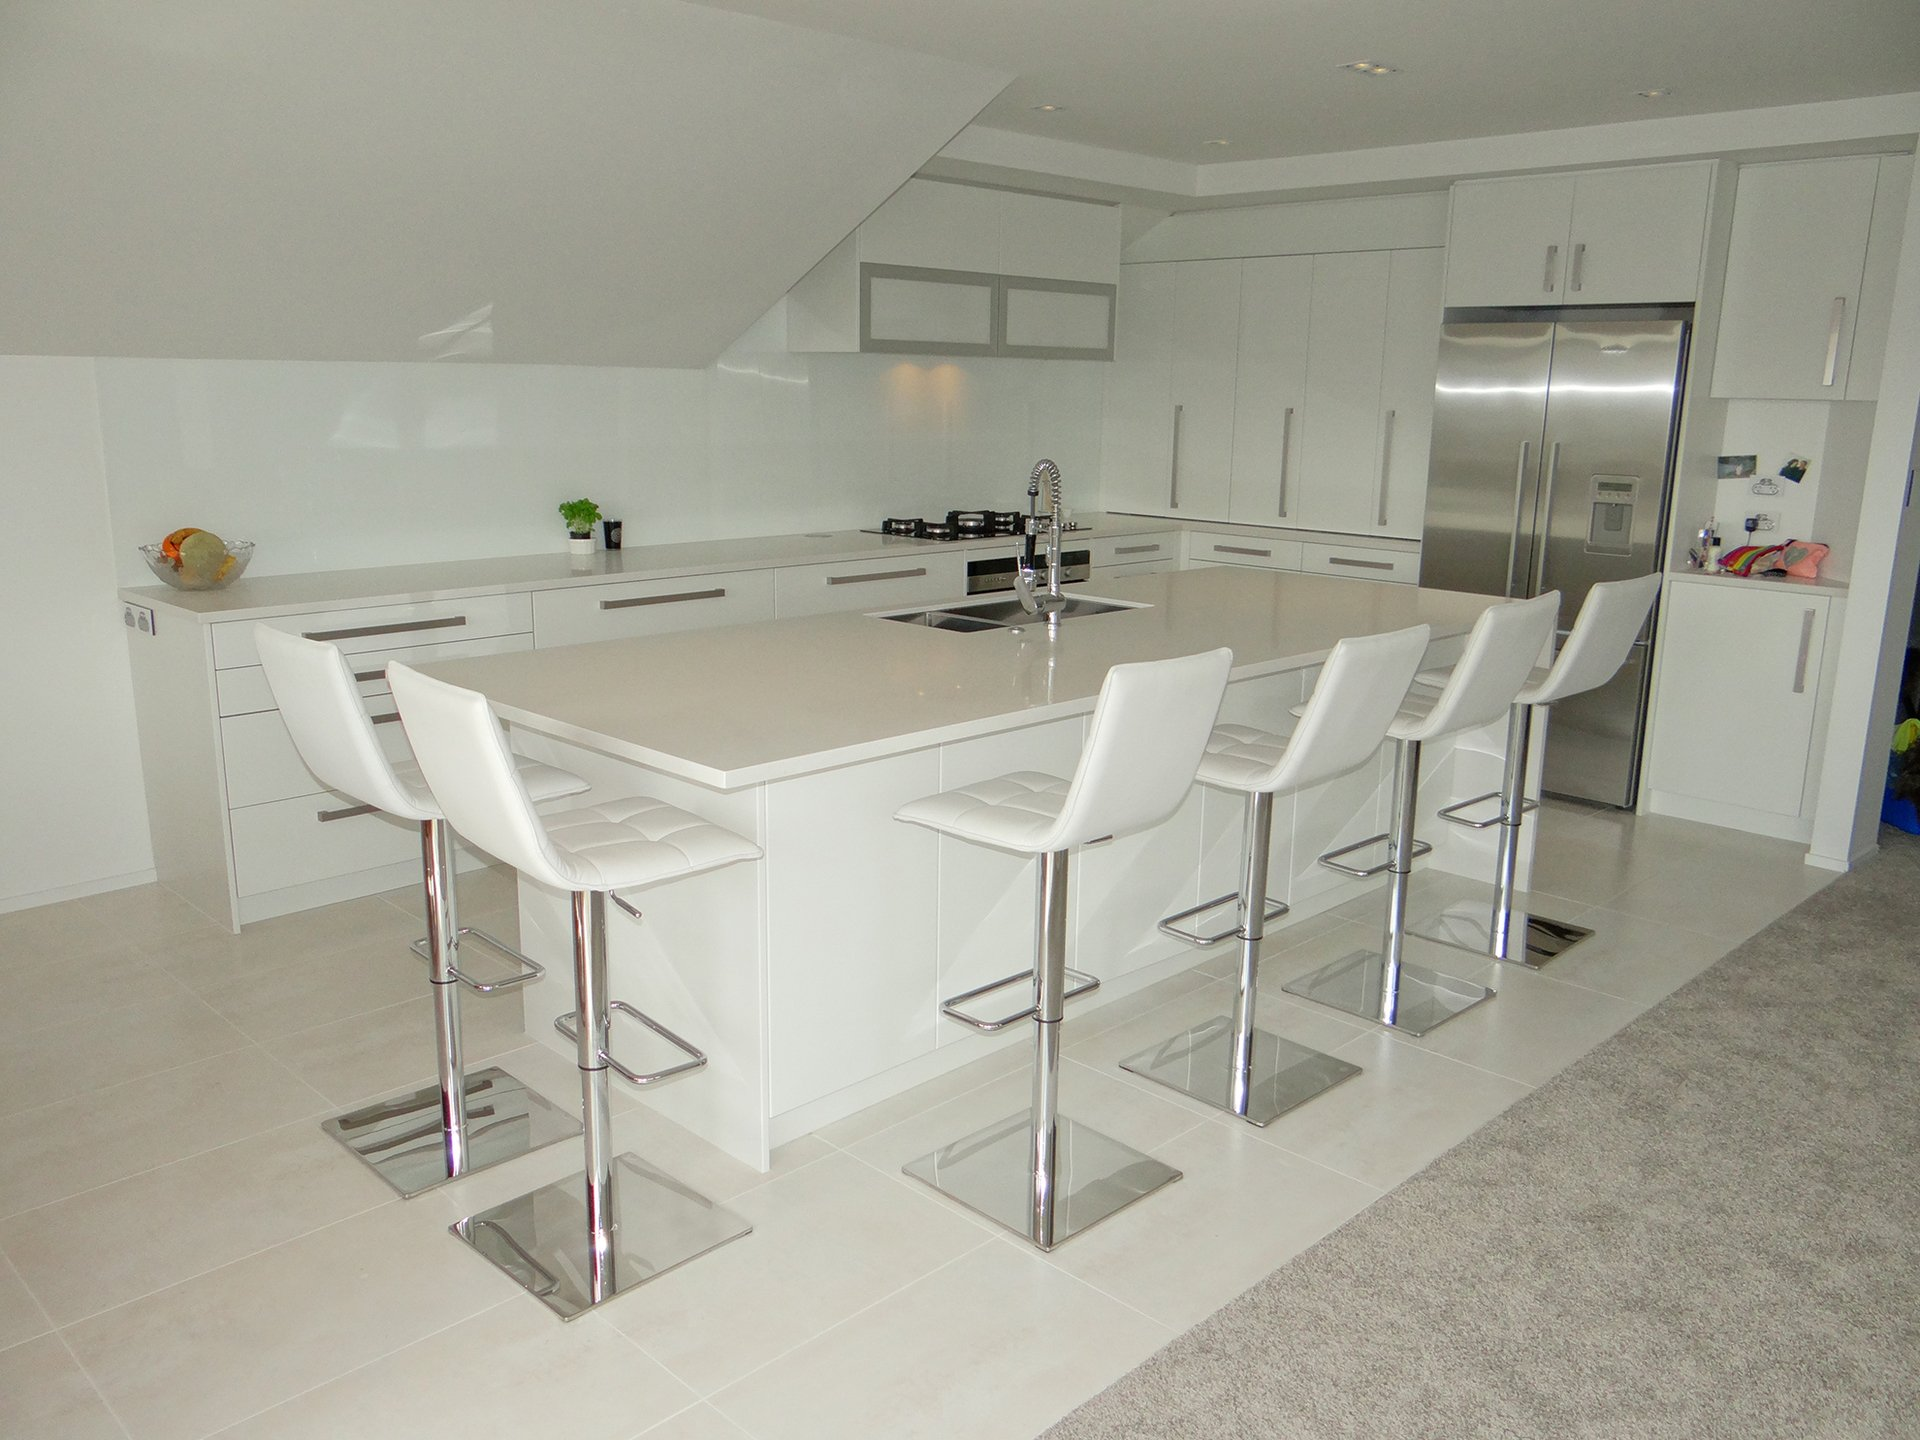 Kitchen in a Takapuna home